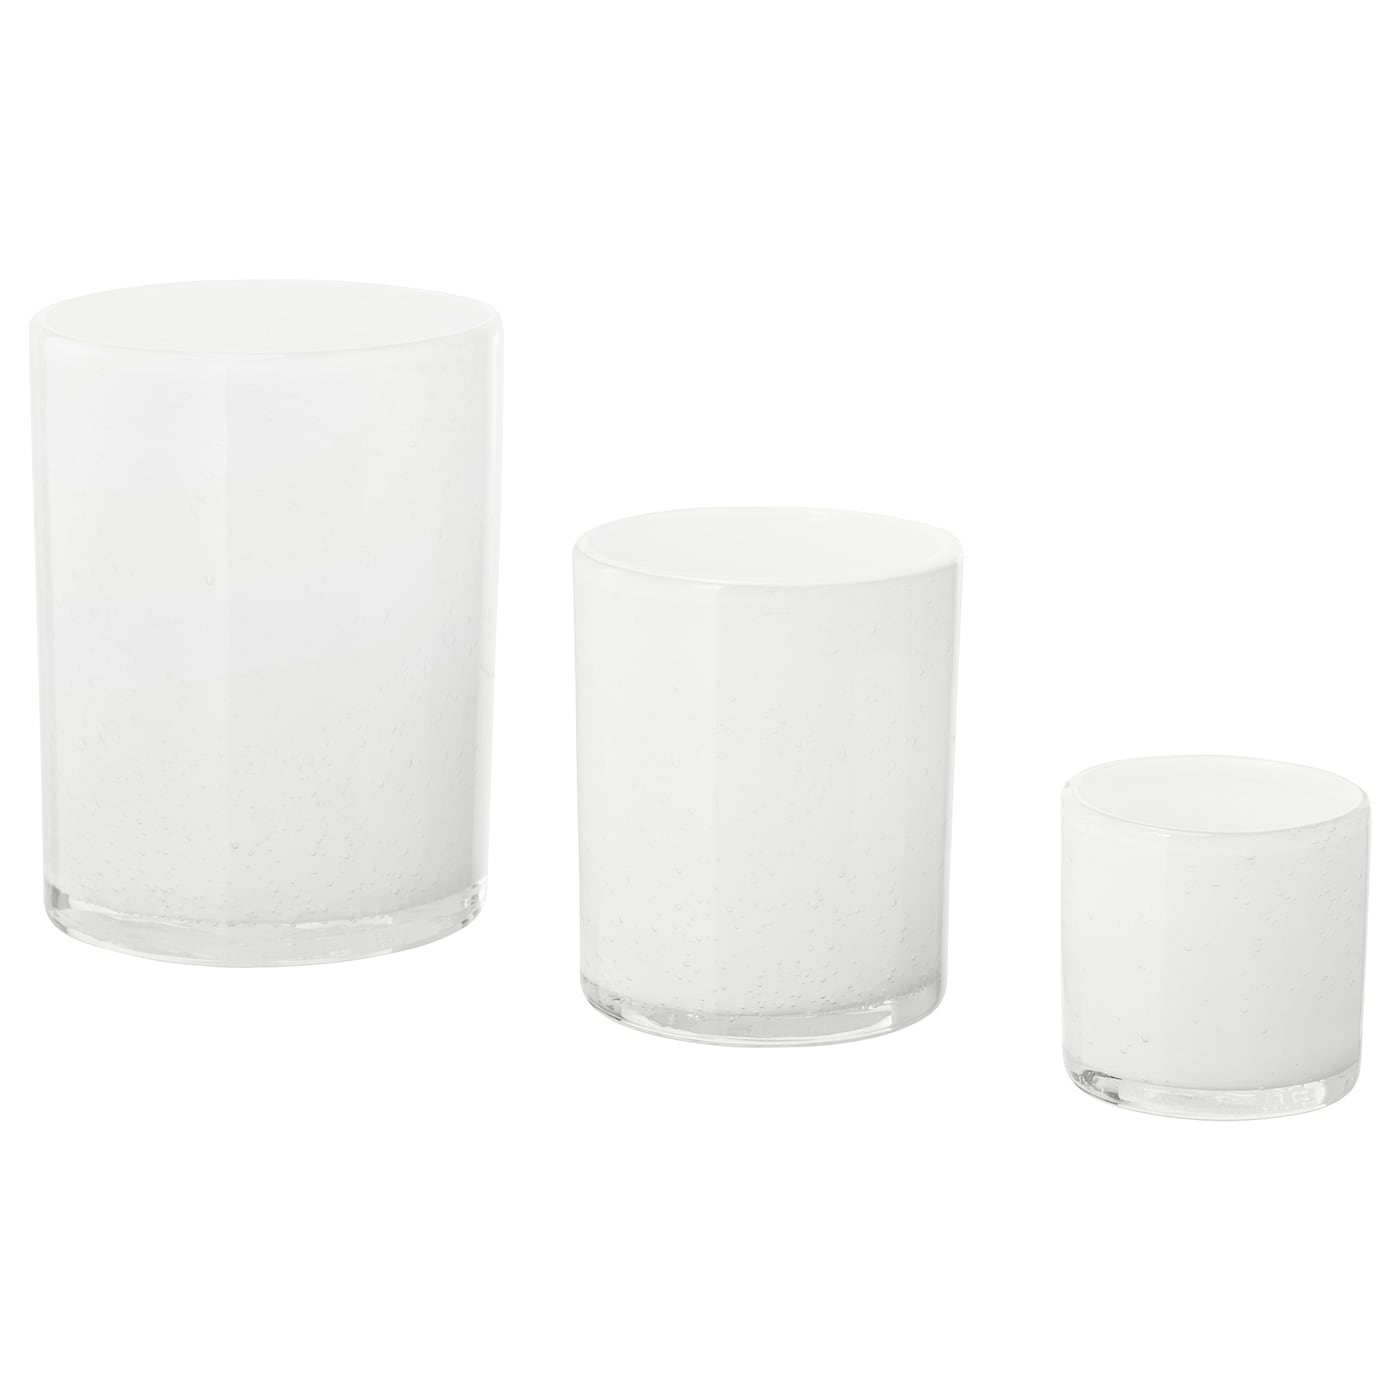 IKEA BLÄNDANDE candle holder, set of 3 Dual function; can be used both as a vase and a lantern.